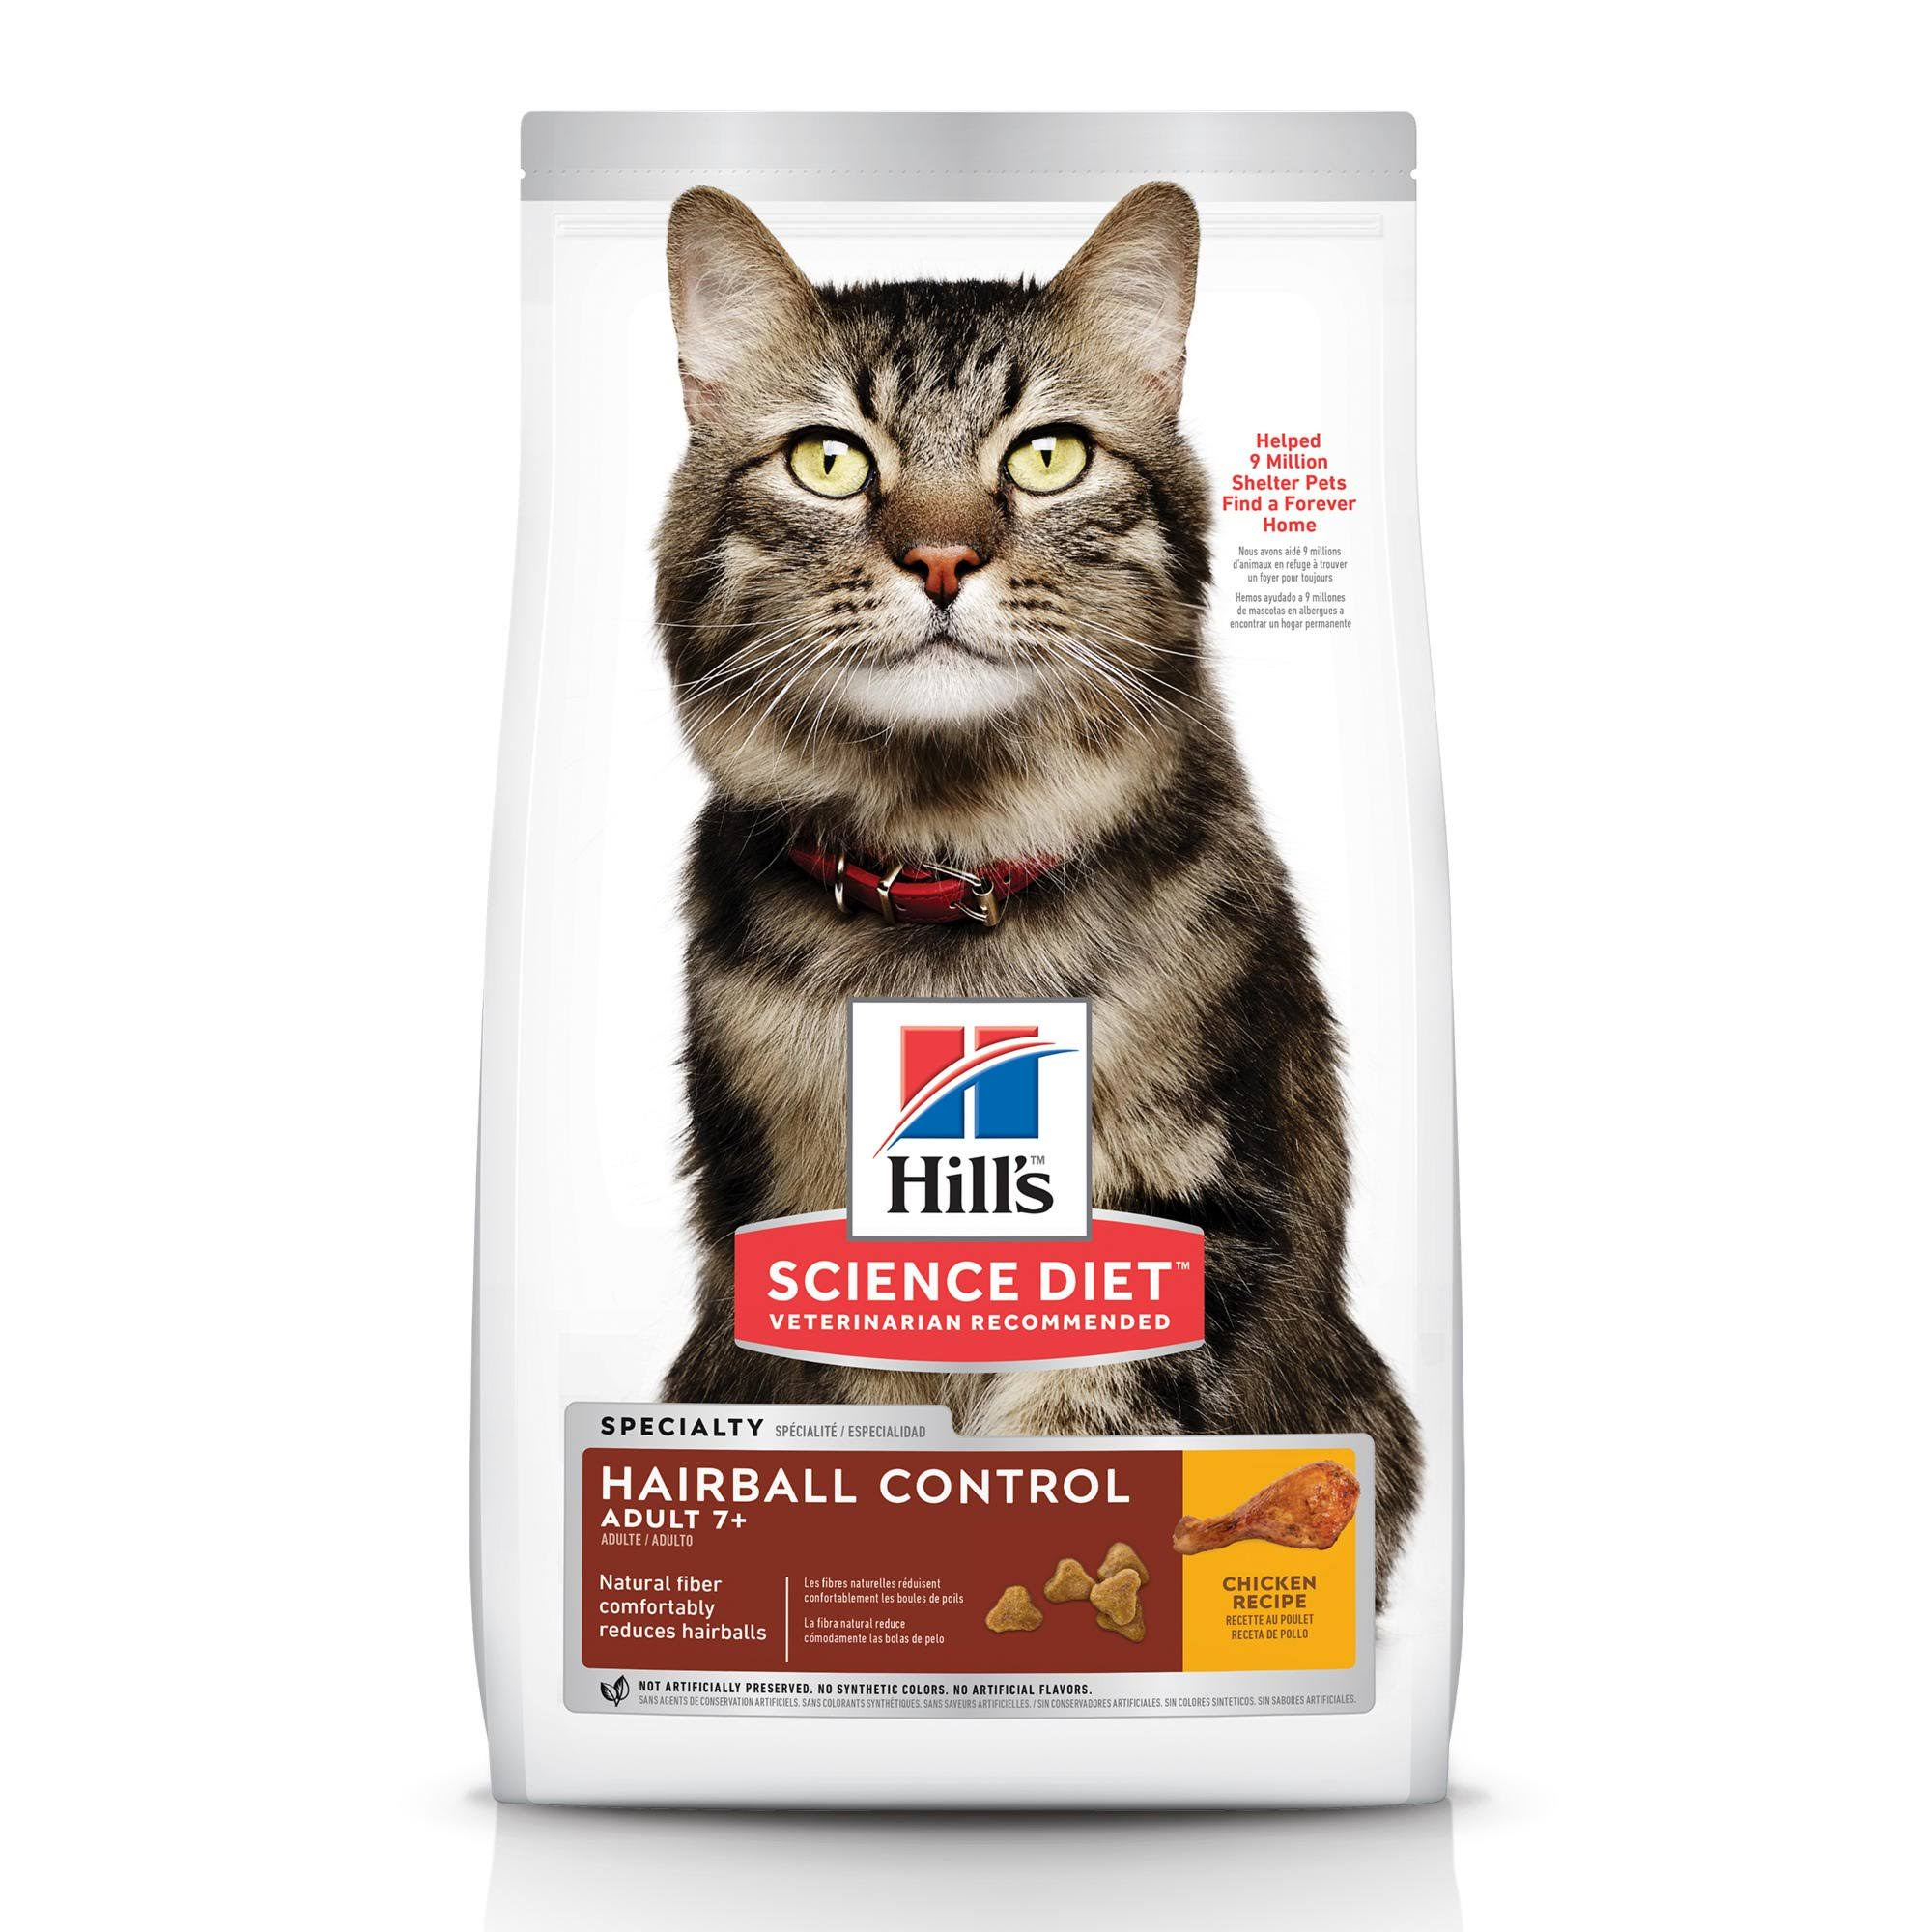 Hill's Science Diet Hairball Control Premium Natural Cat Food - Chicken Recipe